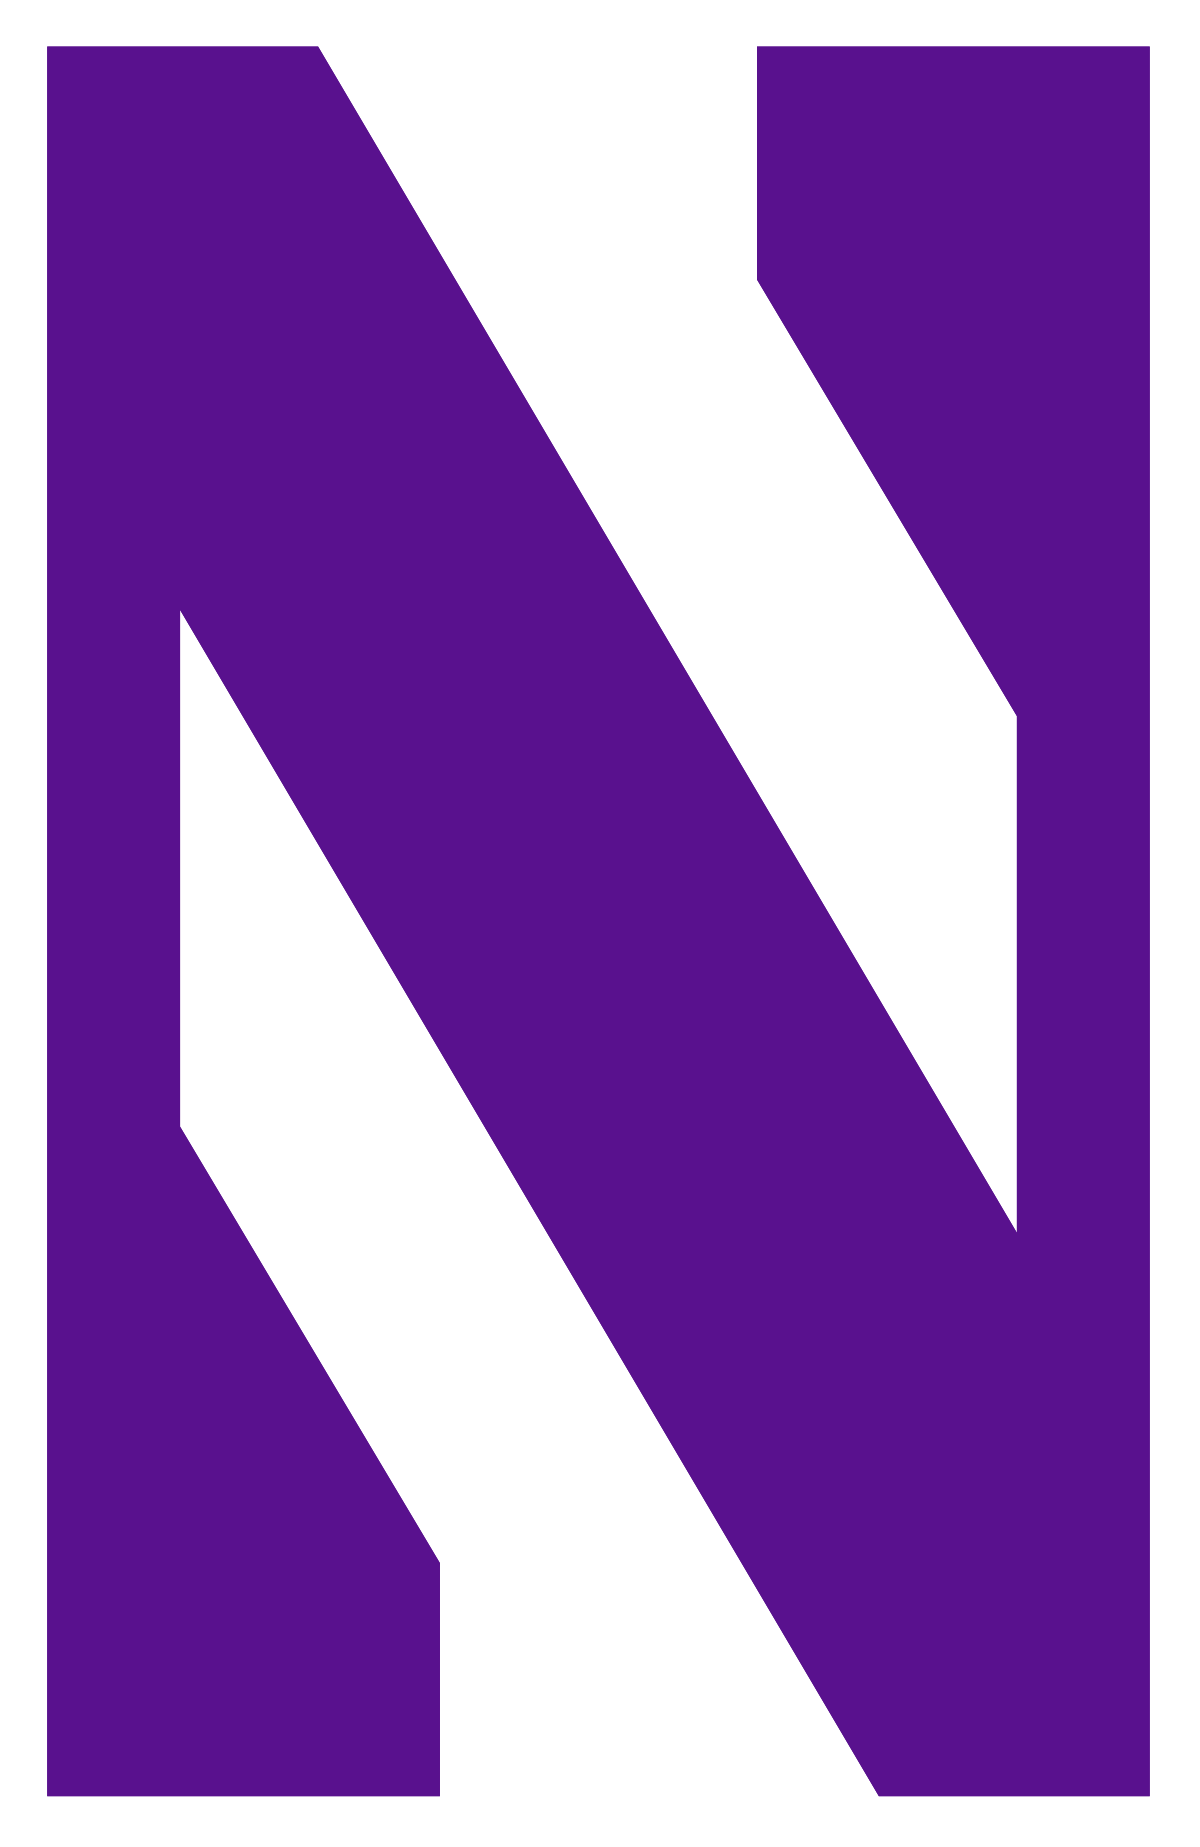 Wildcat baseball clipart jpg freeuse library Northwestern Wildcats baseball - Wikipedia jpg freeuse library